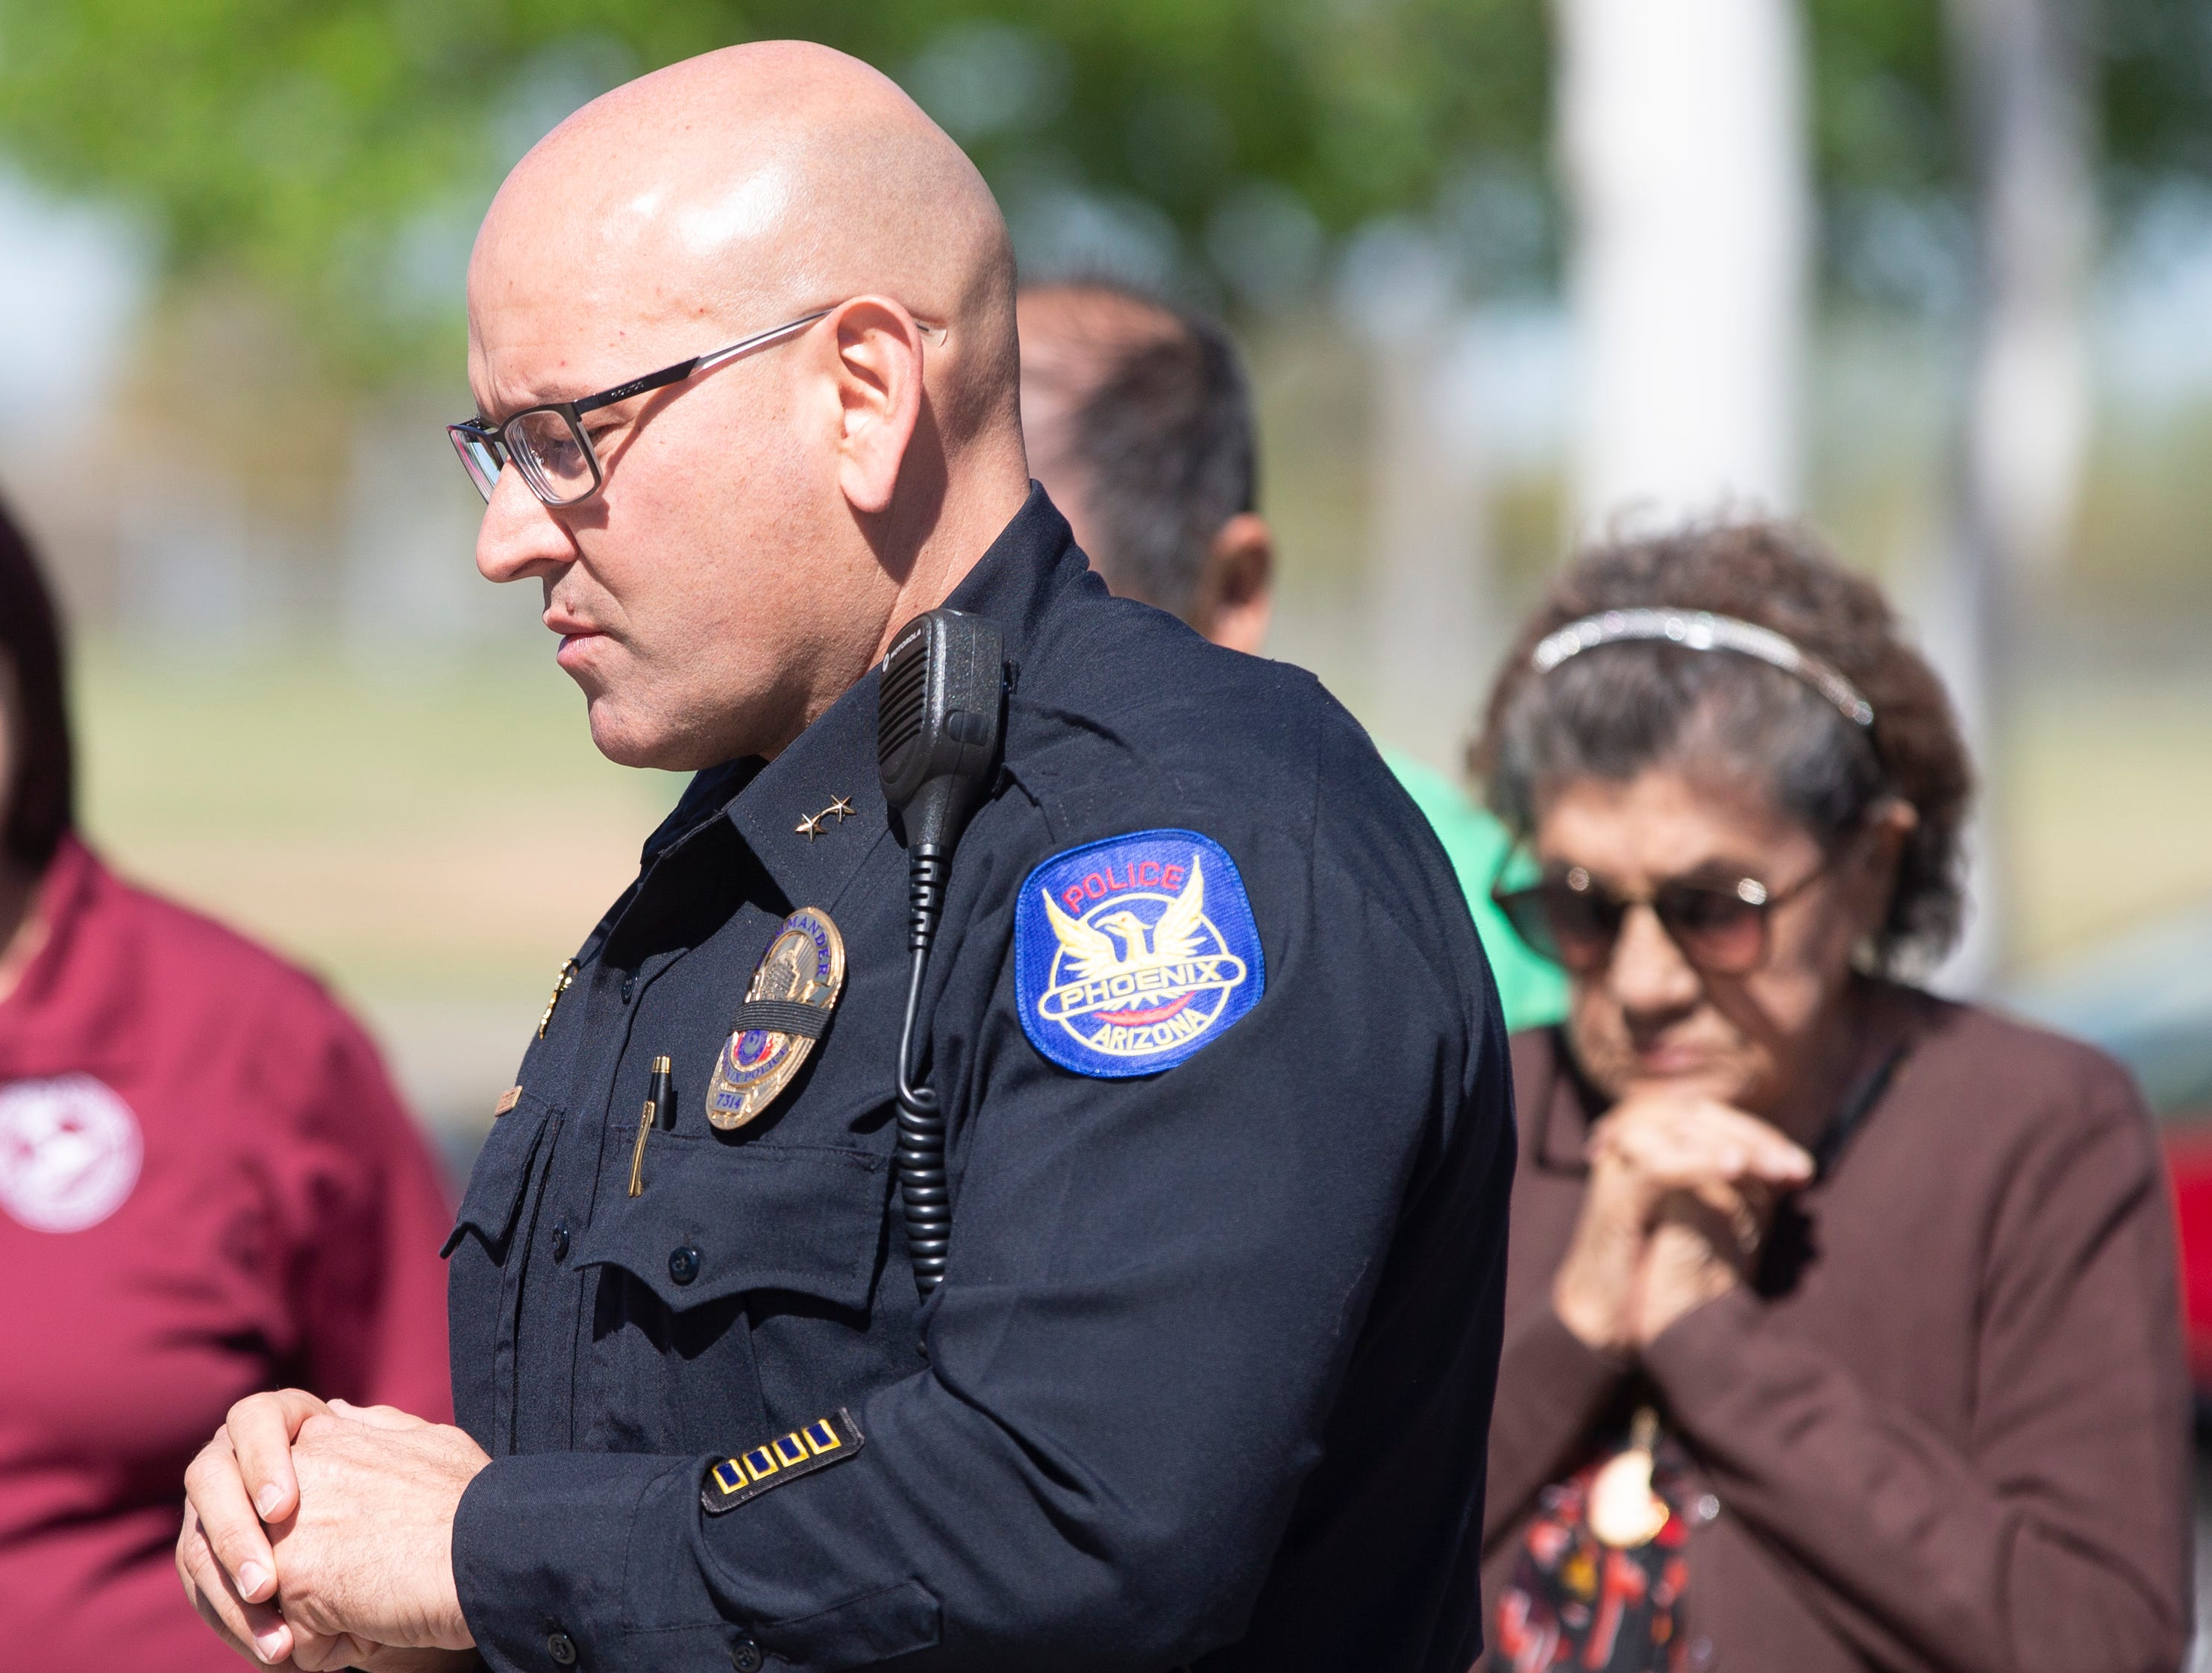 Maryvale Estrella Mountain Precinct Cmdr. Edward DeCastro speaks March 22, 2019, during a prayer services for Officer Paul Rutherford, who was killed in a crash March 21.